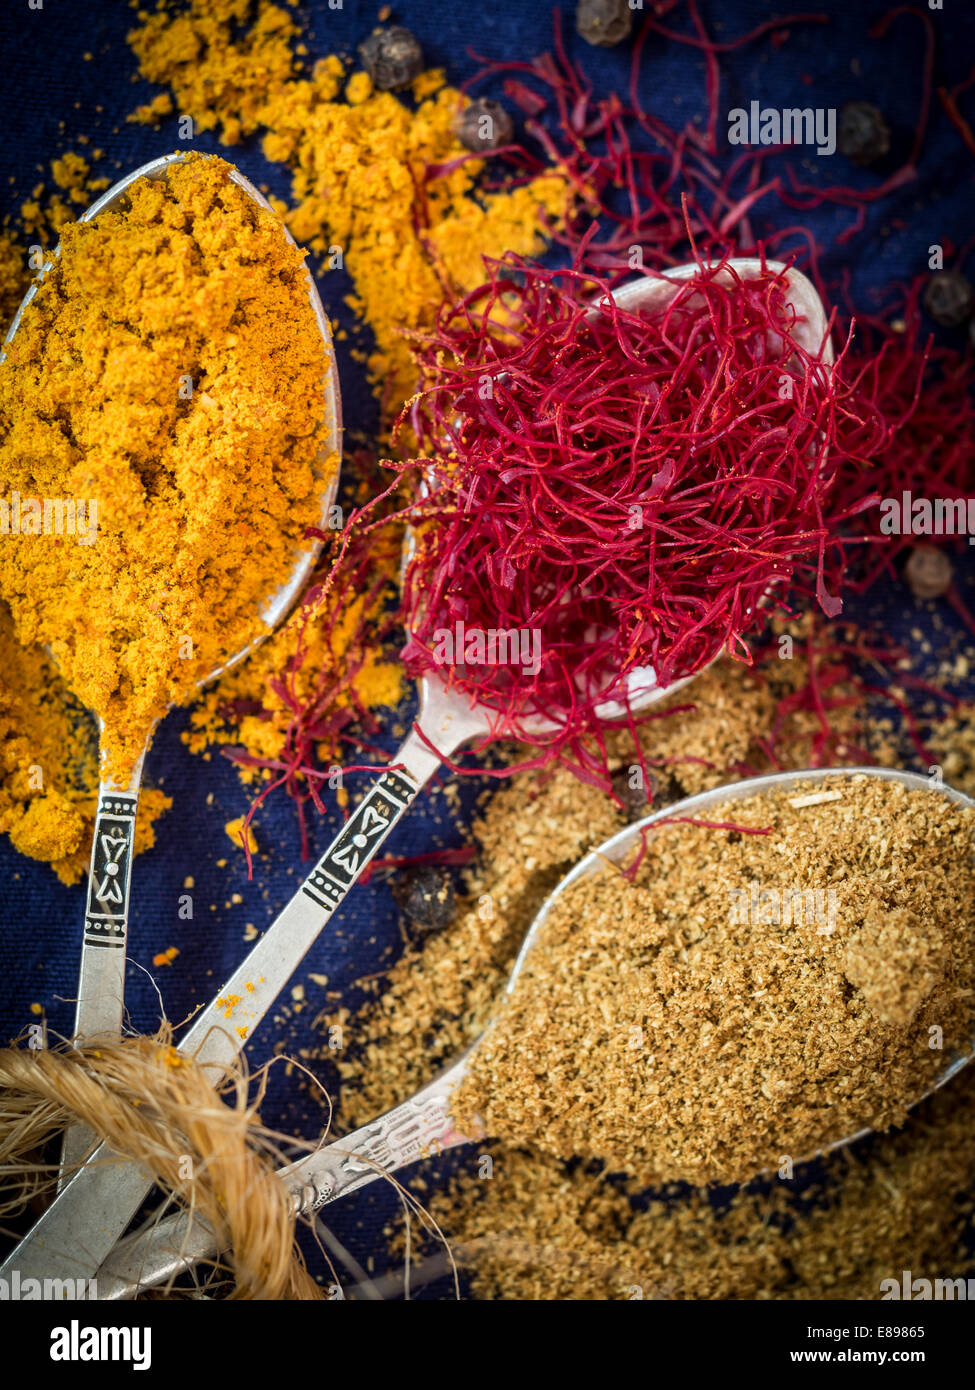 Three silver spoons with spices from Zanzibar: turmeric, saffron and cumin. Vertical orientation, dark blue background. - Stock Image